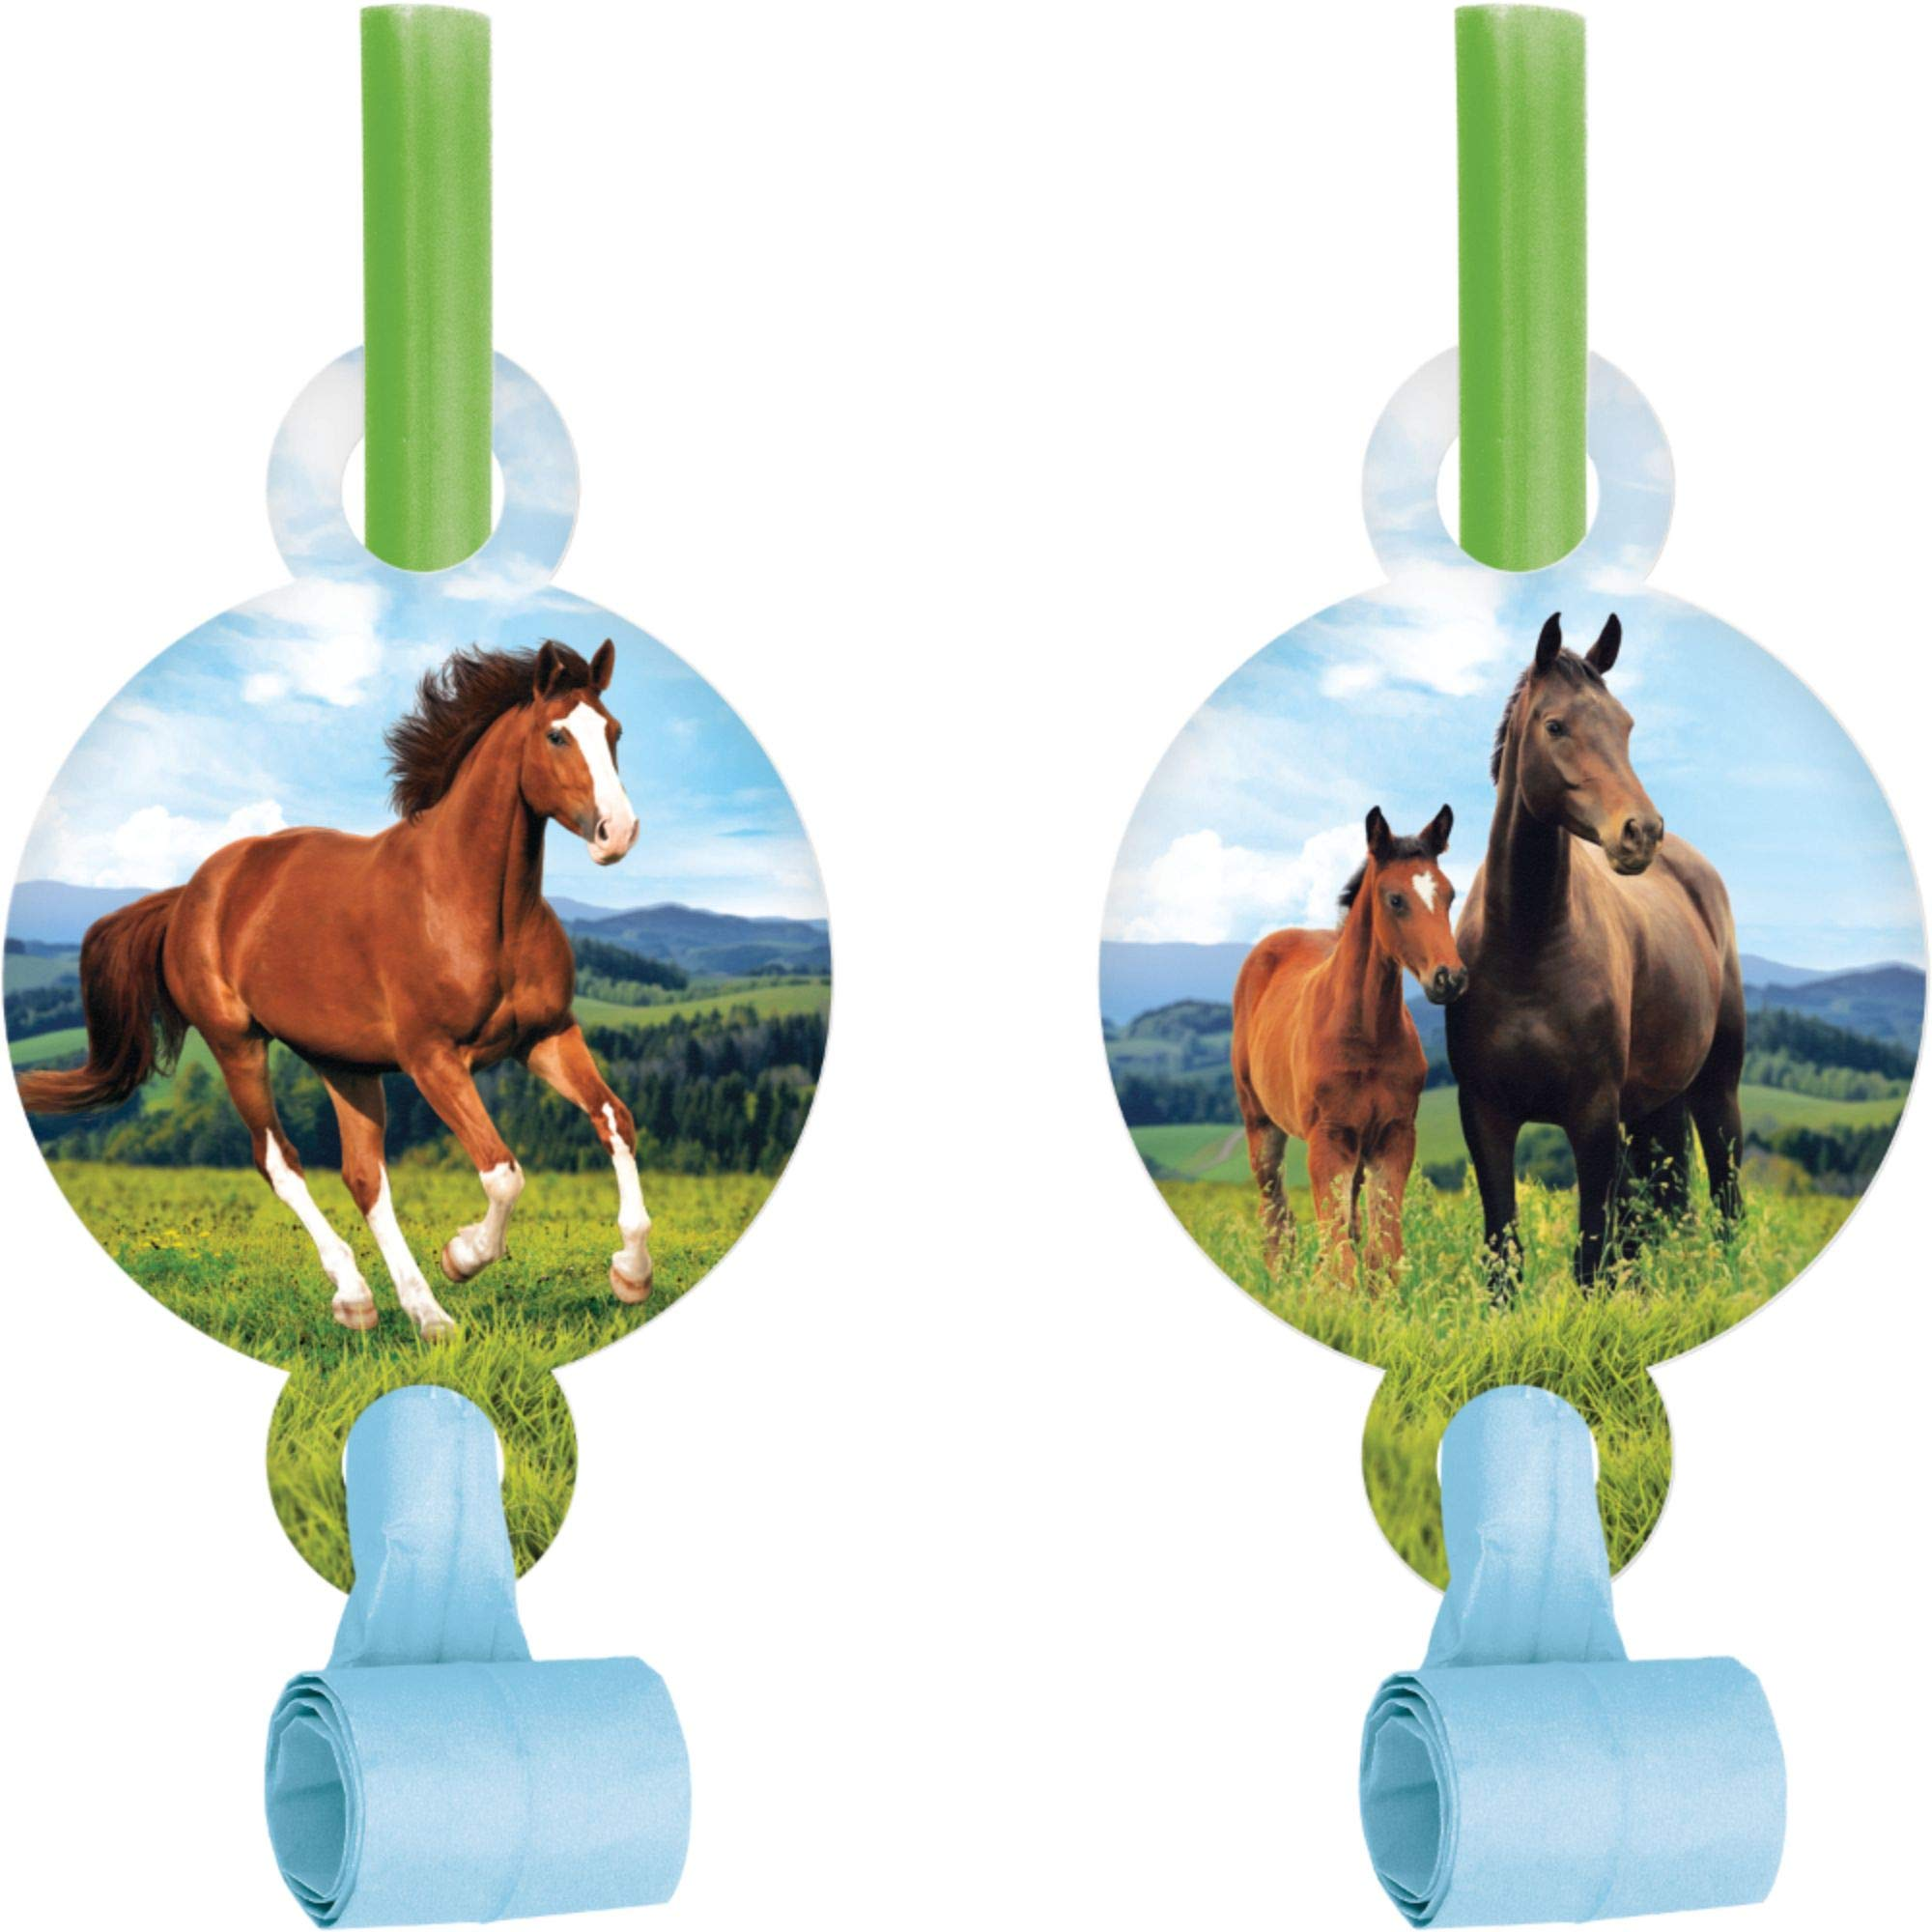 Club Pack of 48 Blue and Green Horse and Pony Blowout Party Noisemakers 5.25'' by Party Central